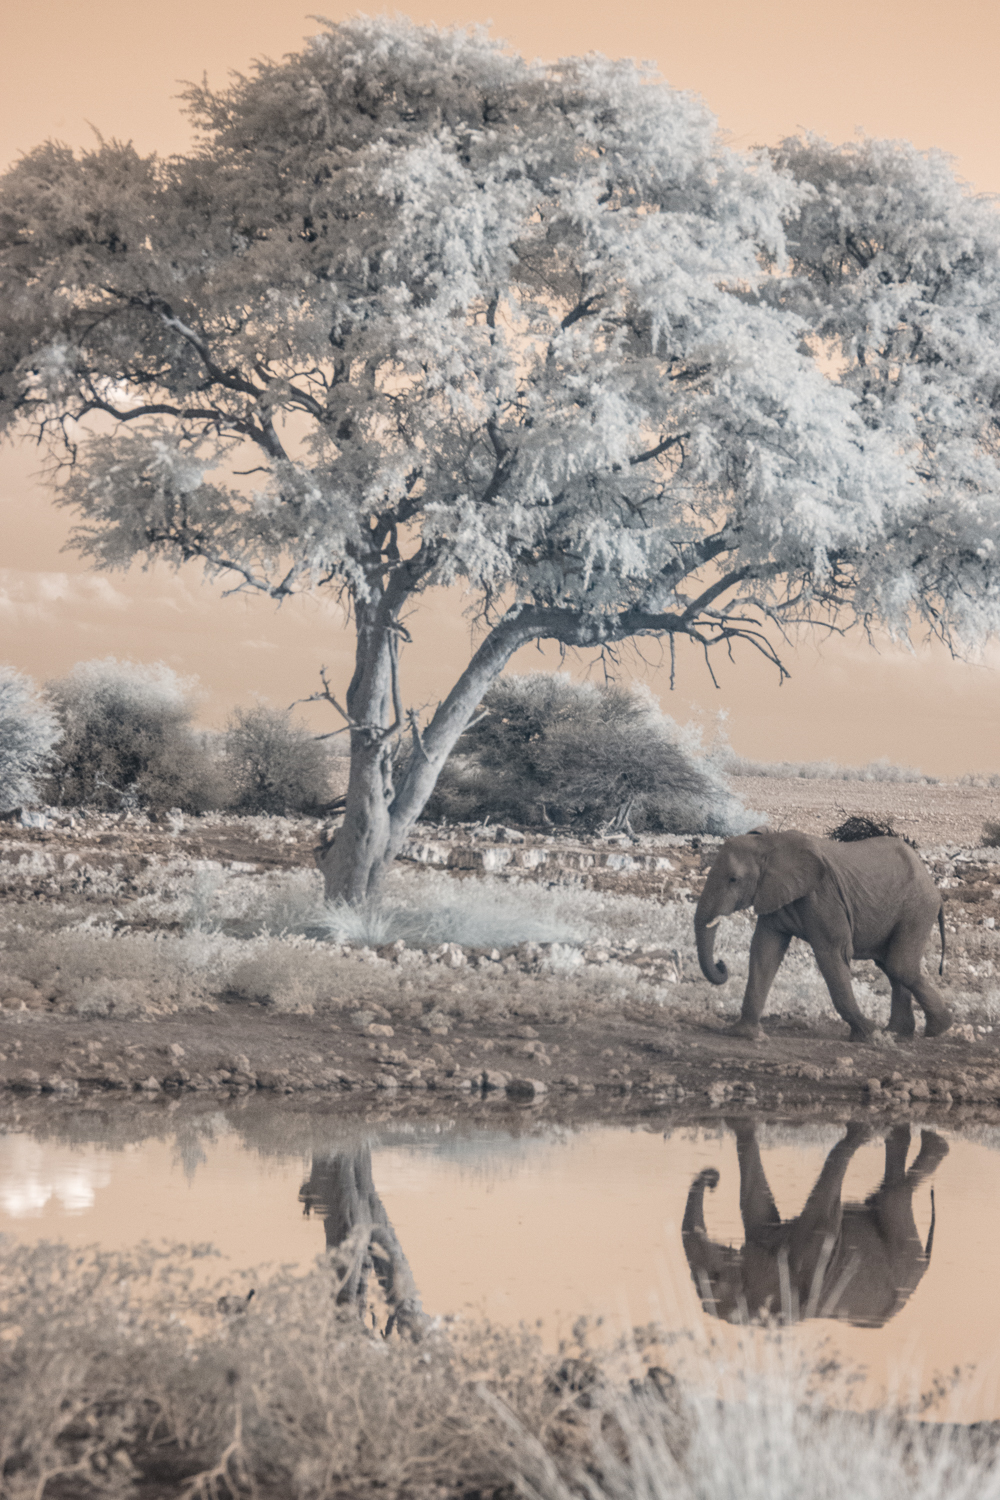 Elephant at Etosha National Park.